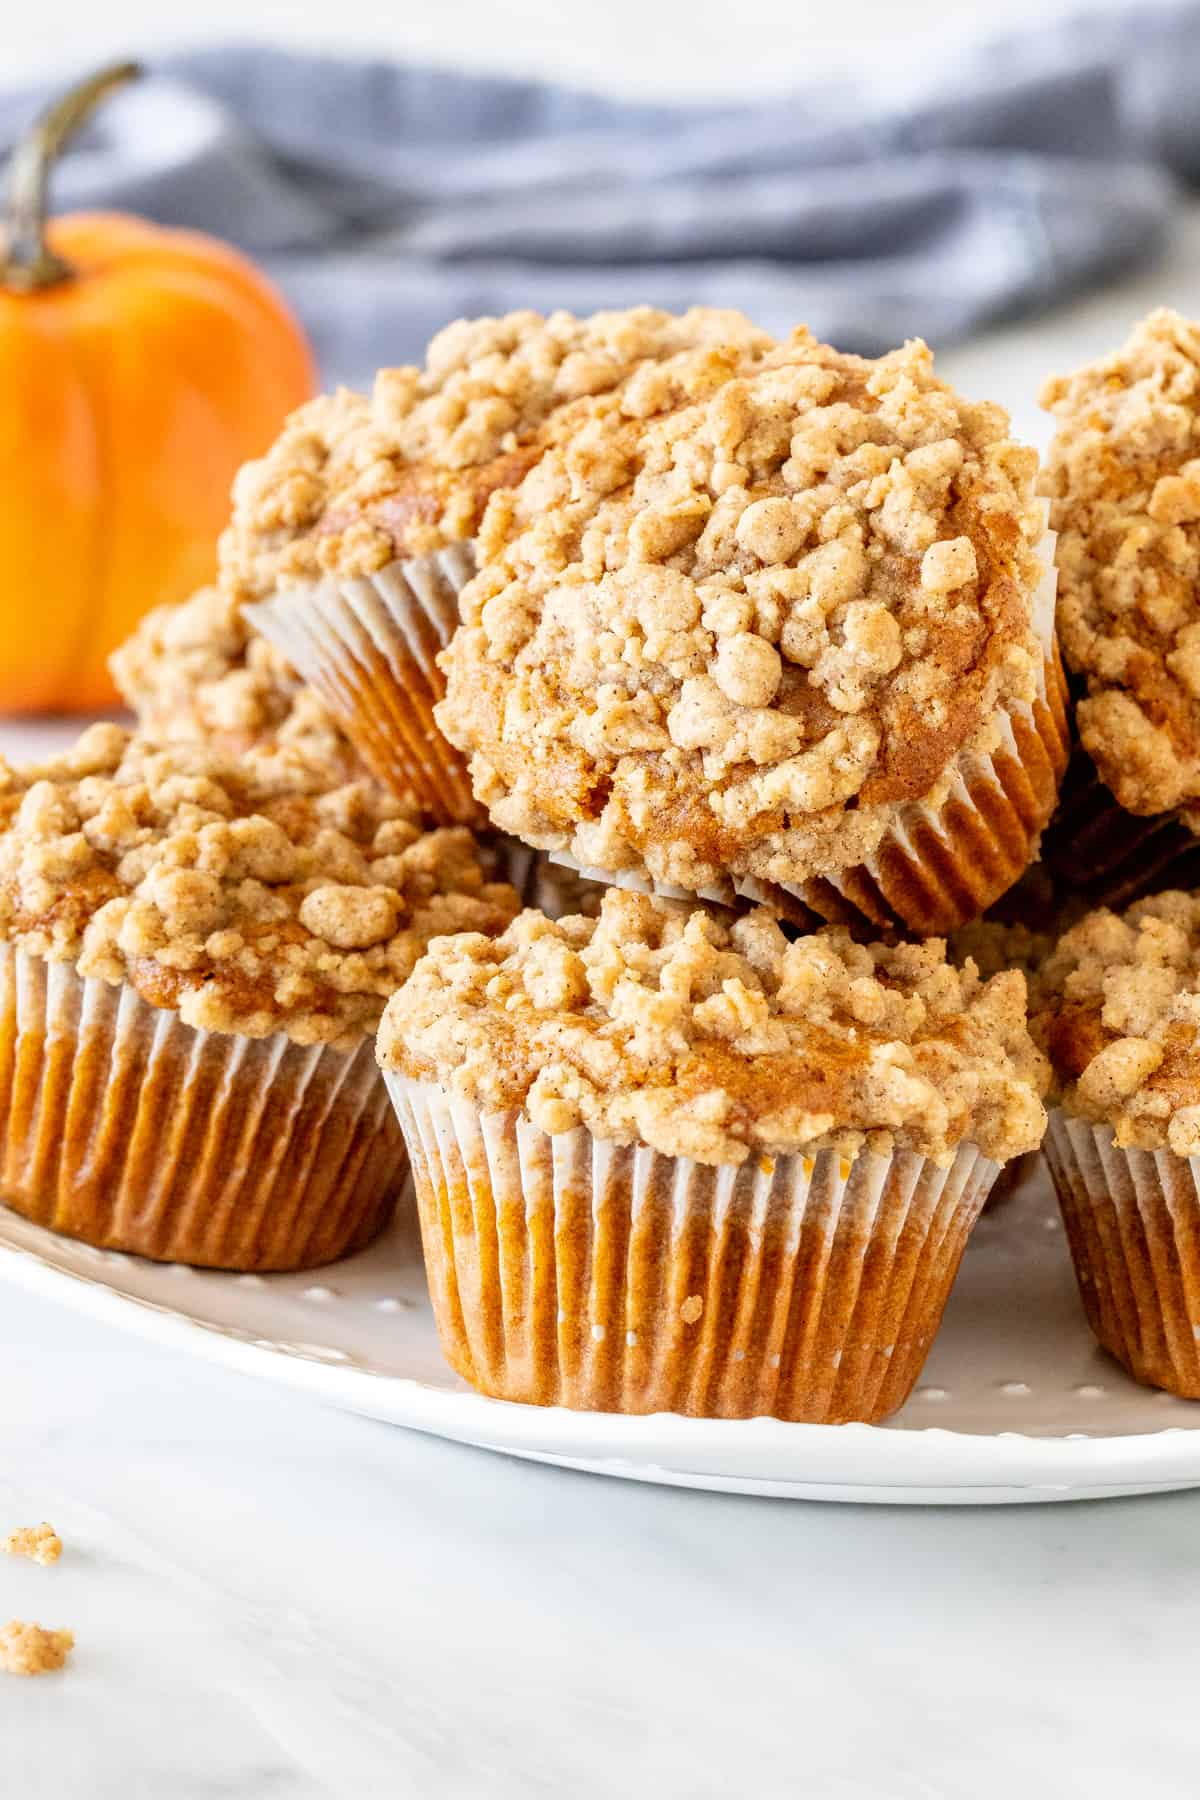 Plate of pumpkin muffins with streusel topping.